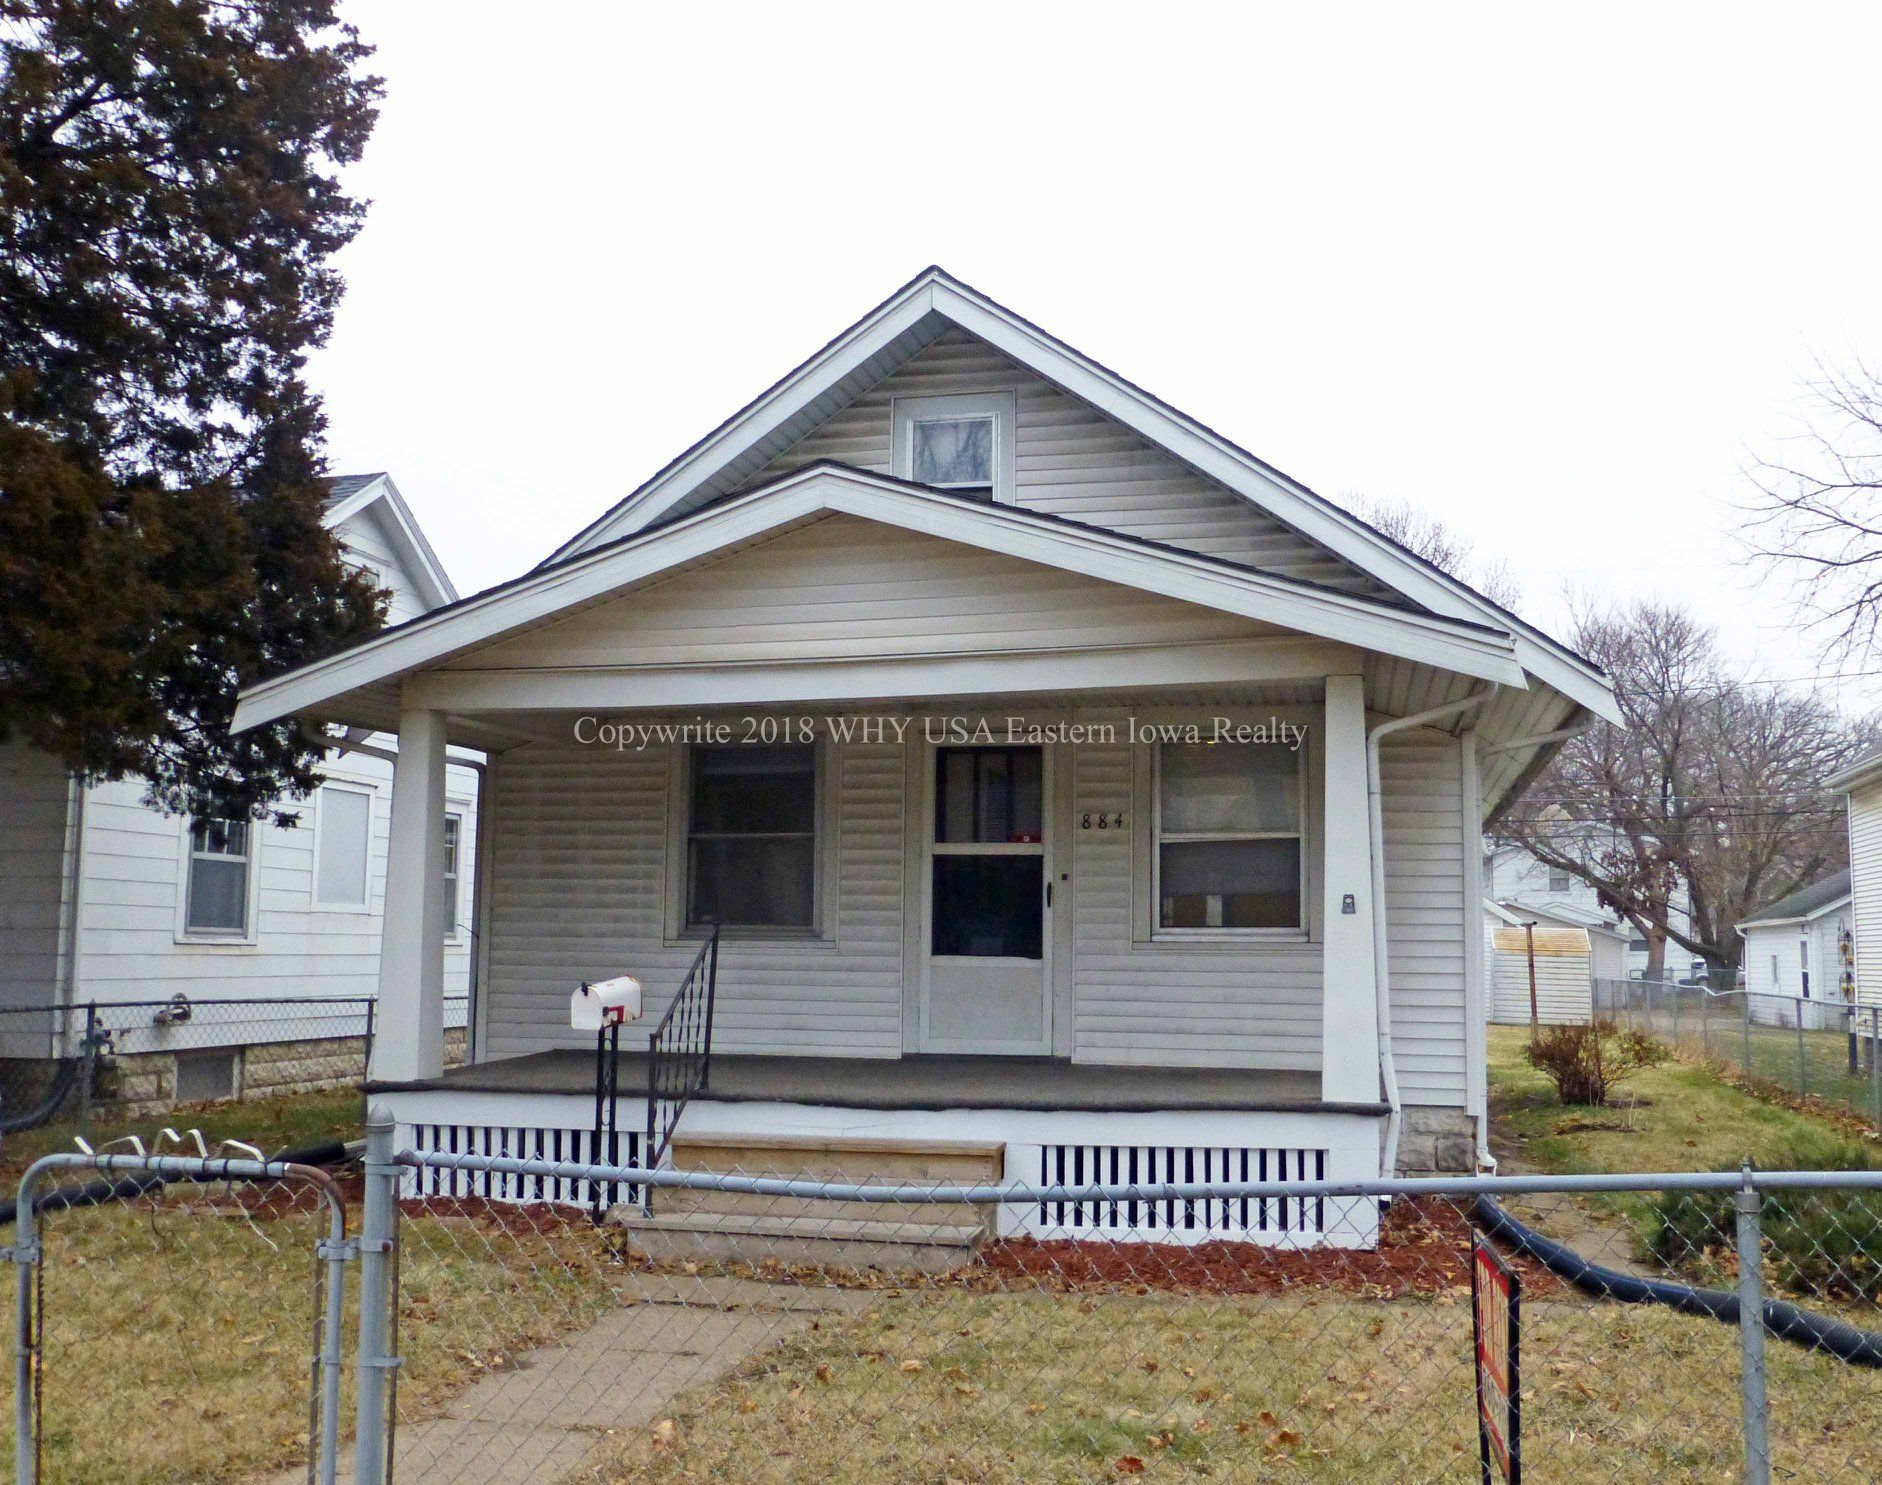 For Rent 2 Bedroom Ne Cedar Rapids Home With 2 Stall Garage For